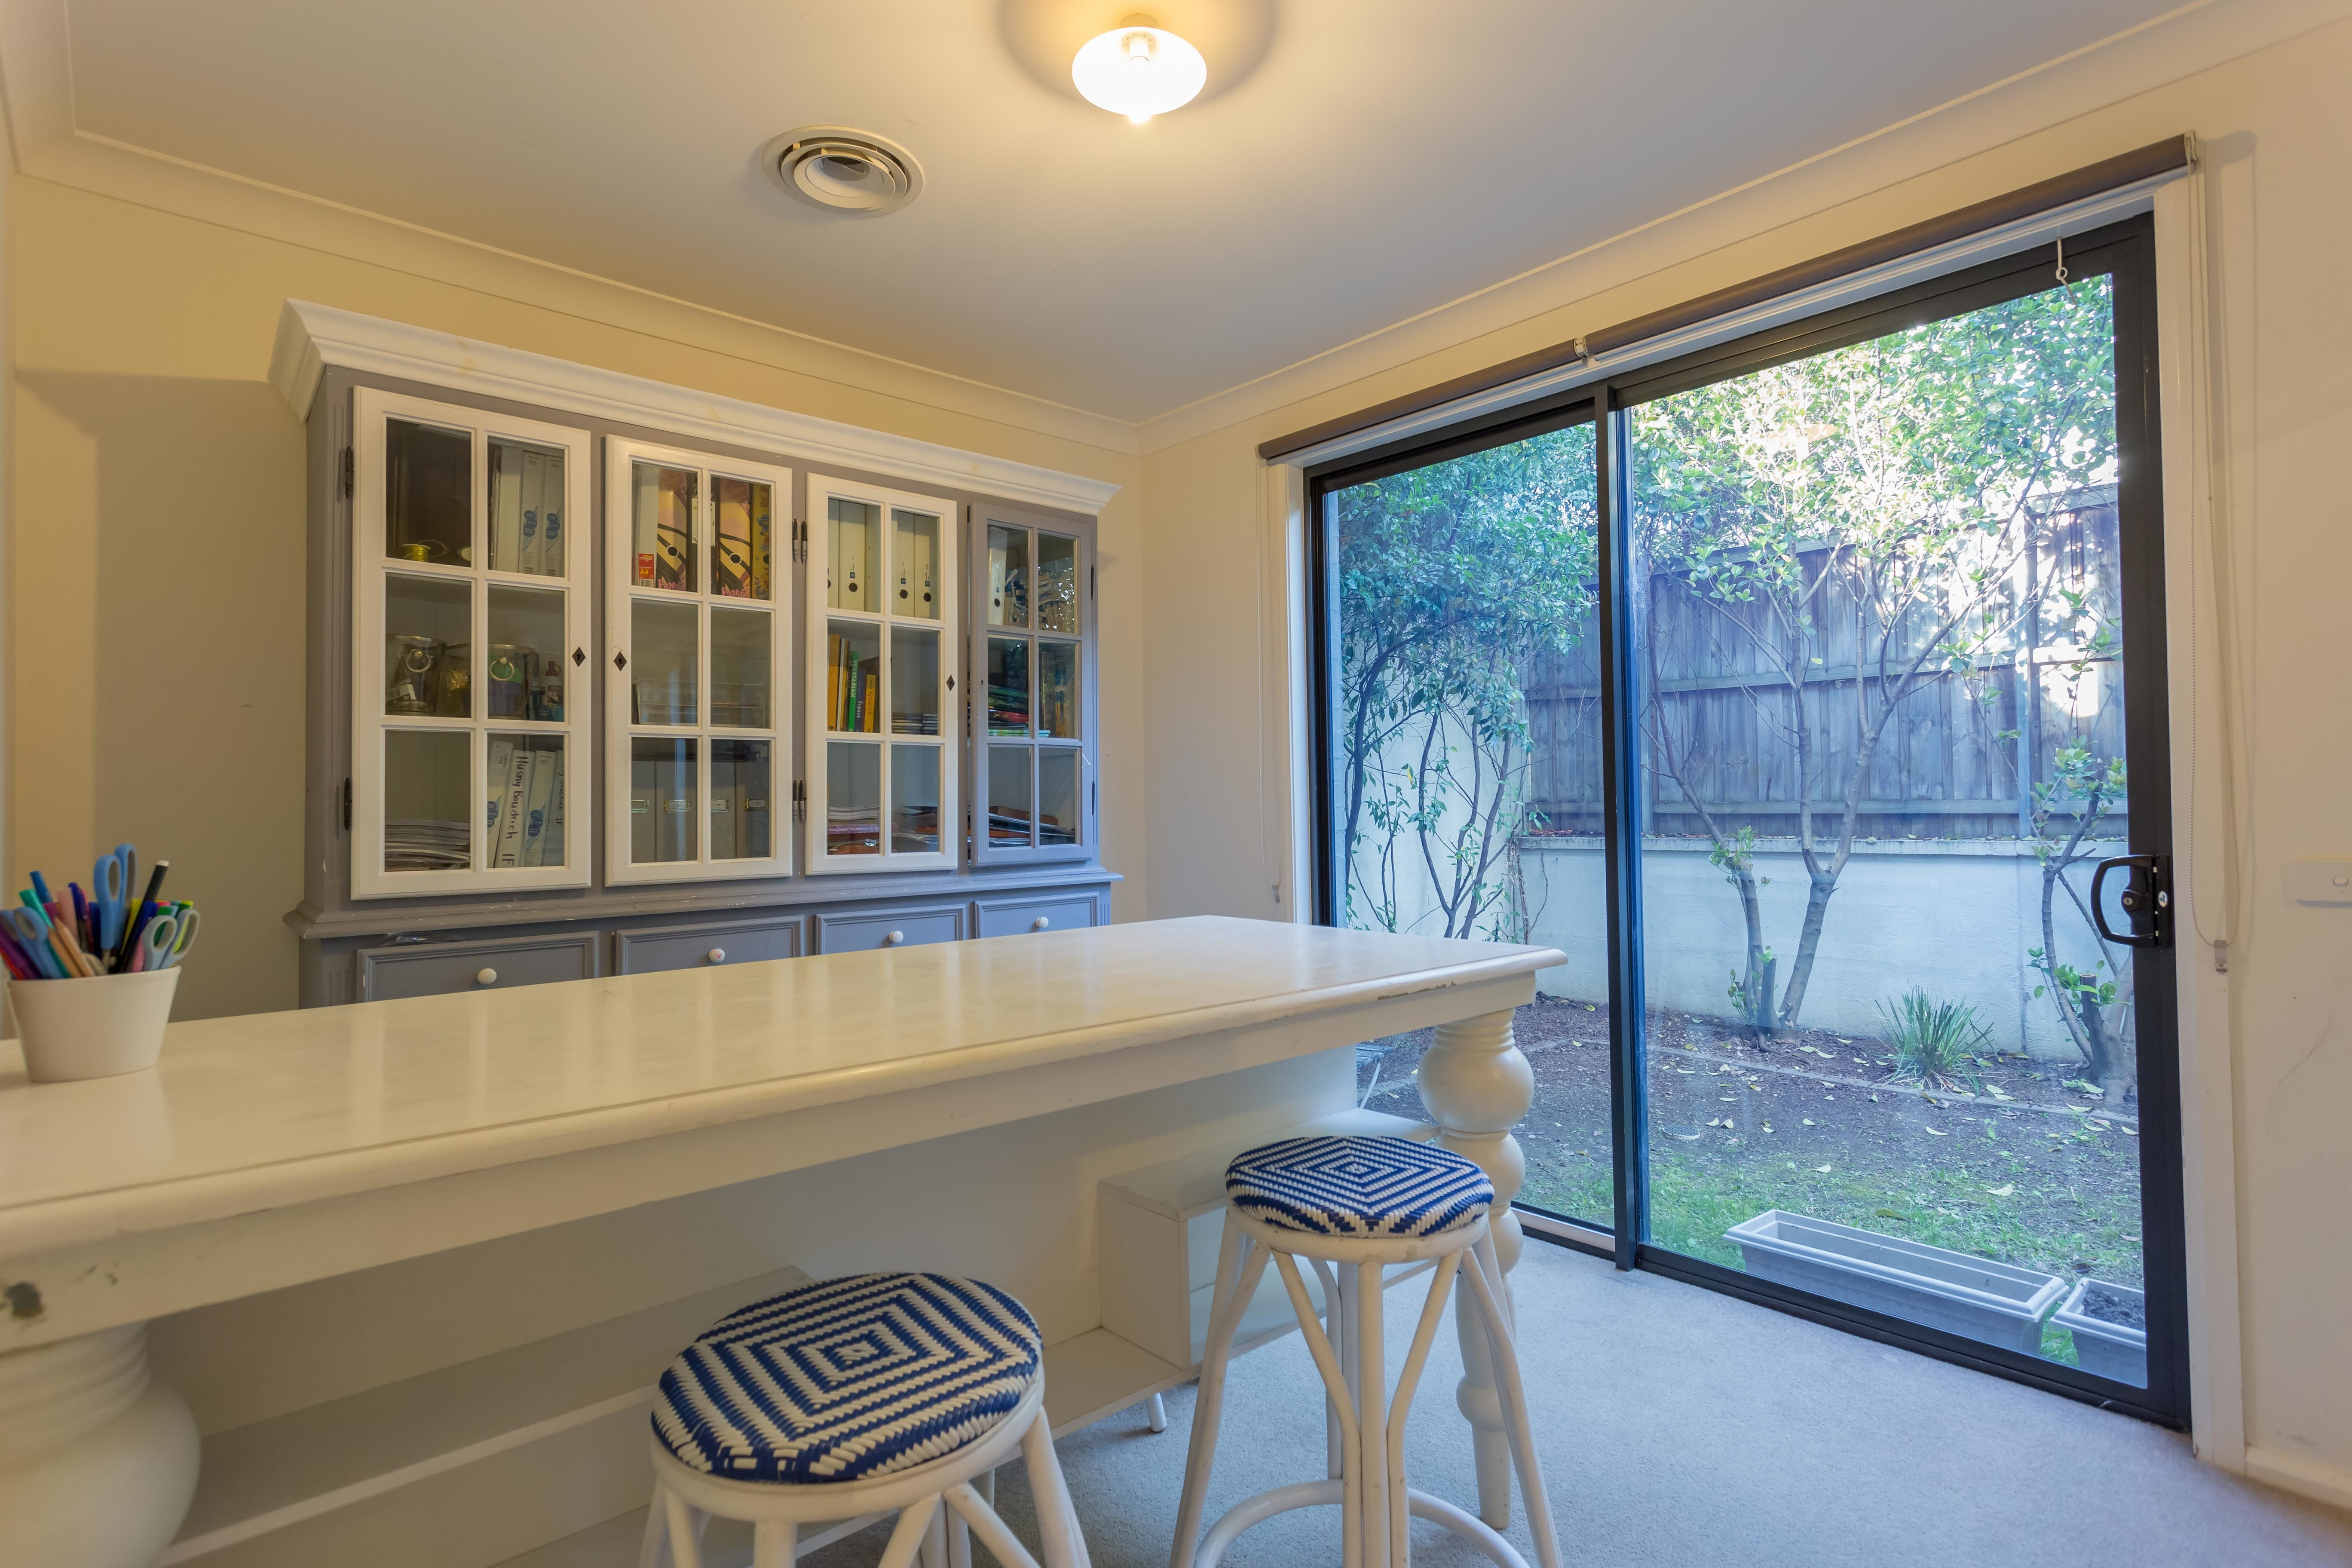 House for sale CASTLE HILL NSW 2154 | myland.com.au